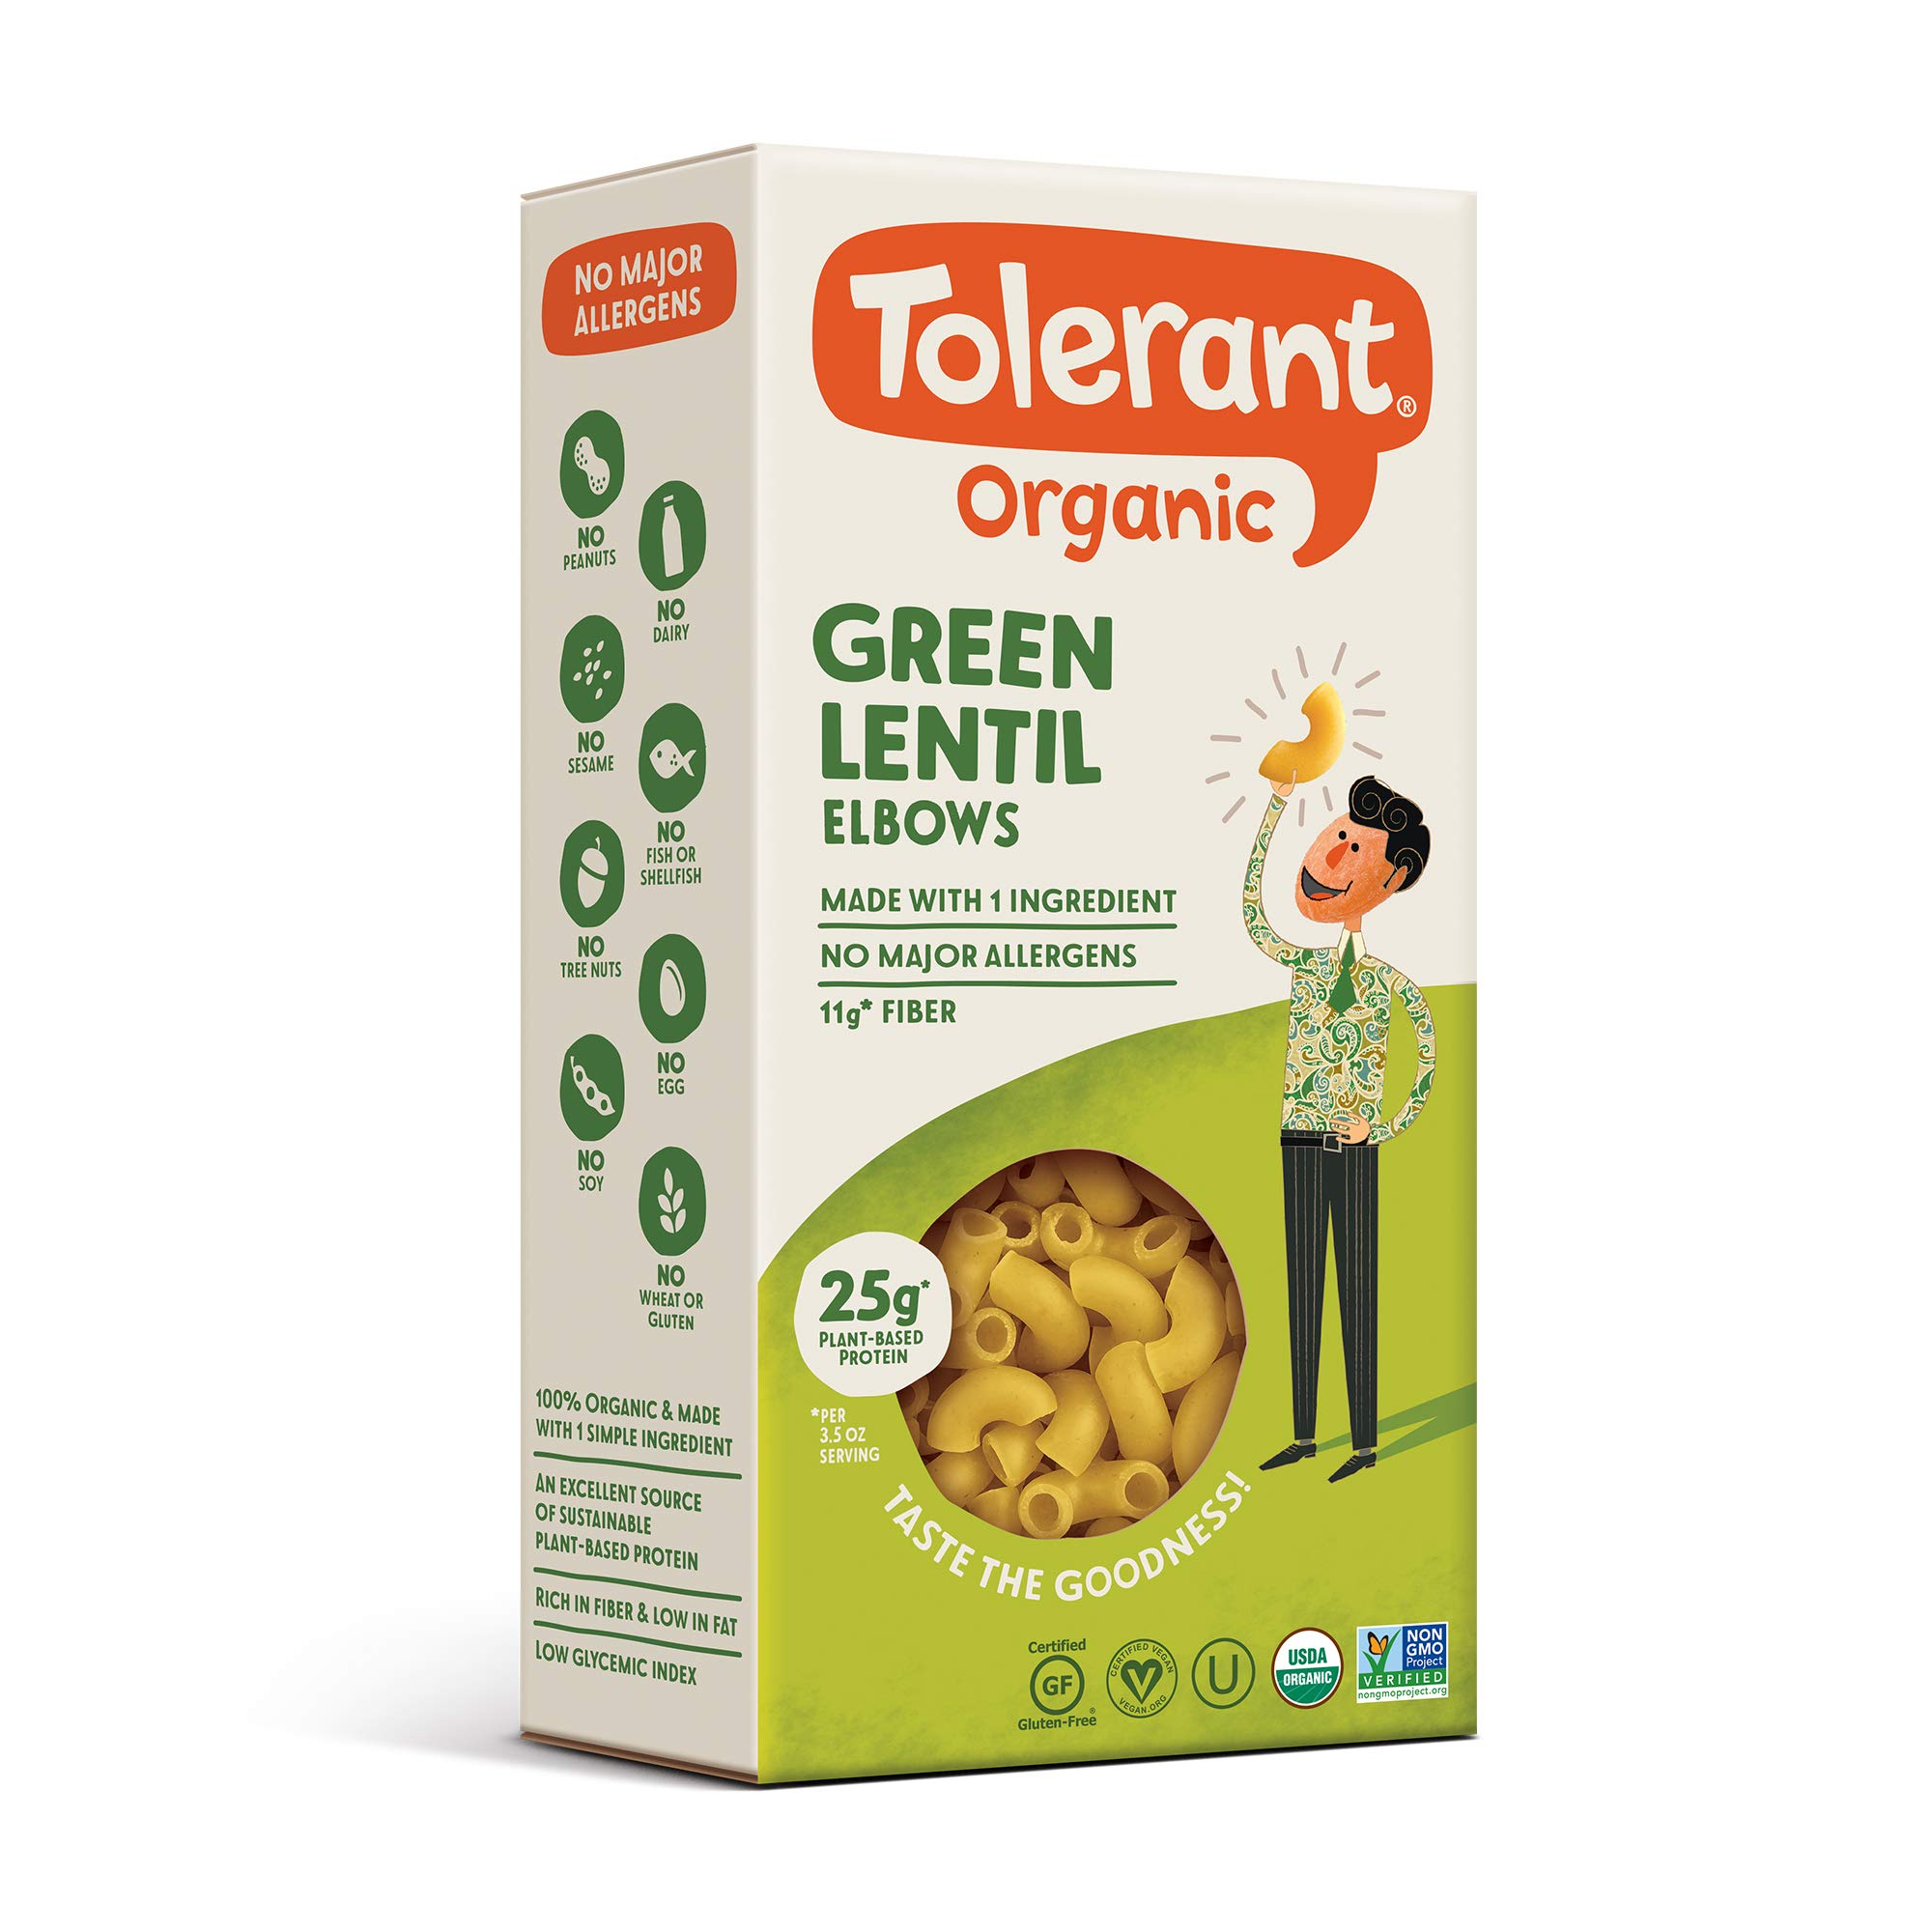 Tolerant Organic Gluten Free Green Lentil Elbow Pasta, 8 Ounce Box (Case of 6), Plant Based Protein, Vegan Pasta, Single Ingredient Protein Pasta, Whole Food, Clean Pasta, Low Glycemic Index Pasta